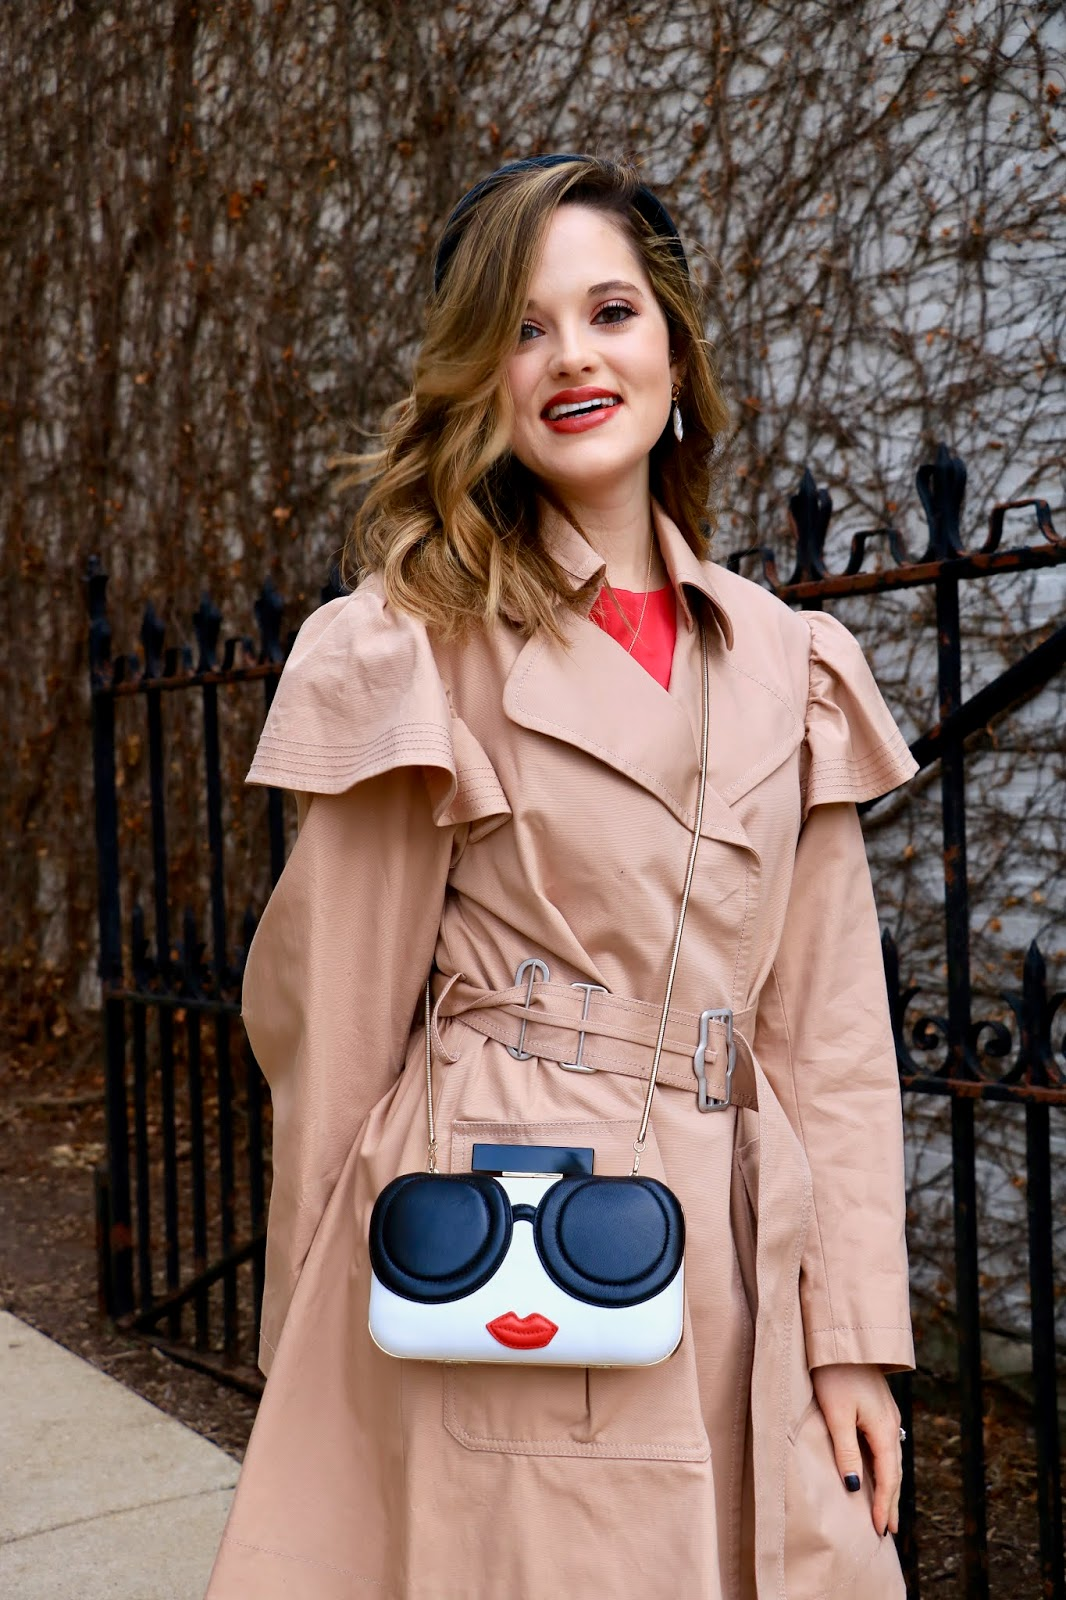 Nyc fashion blogger Kathleen Harper wearing a winter or fall date night outfit in 2020.